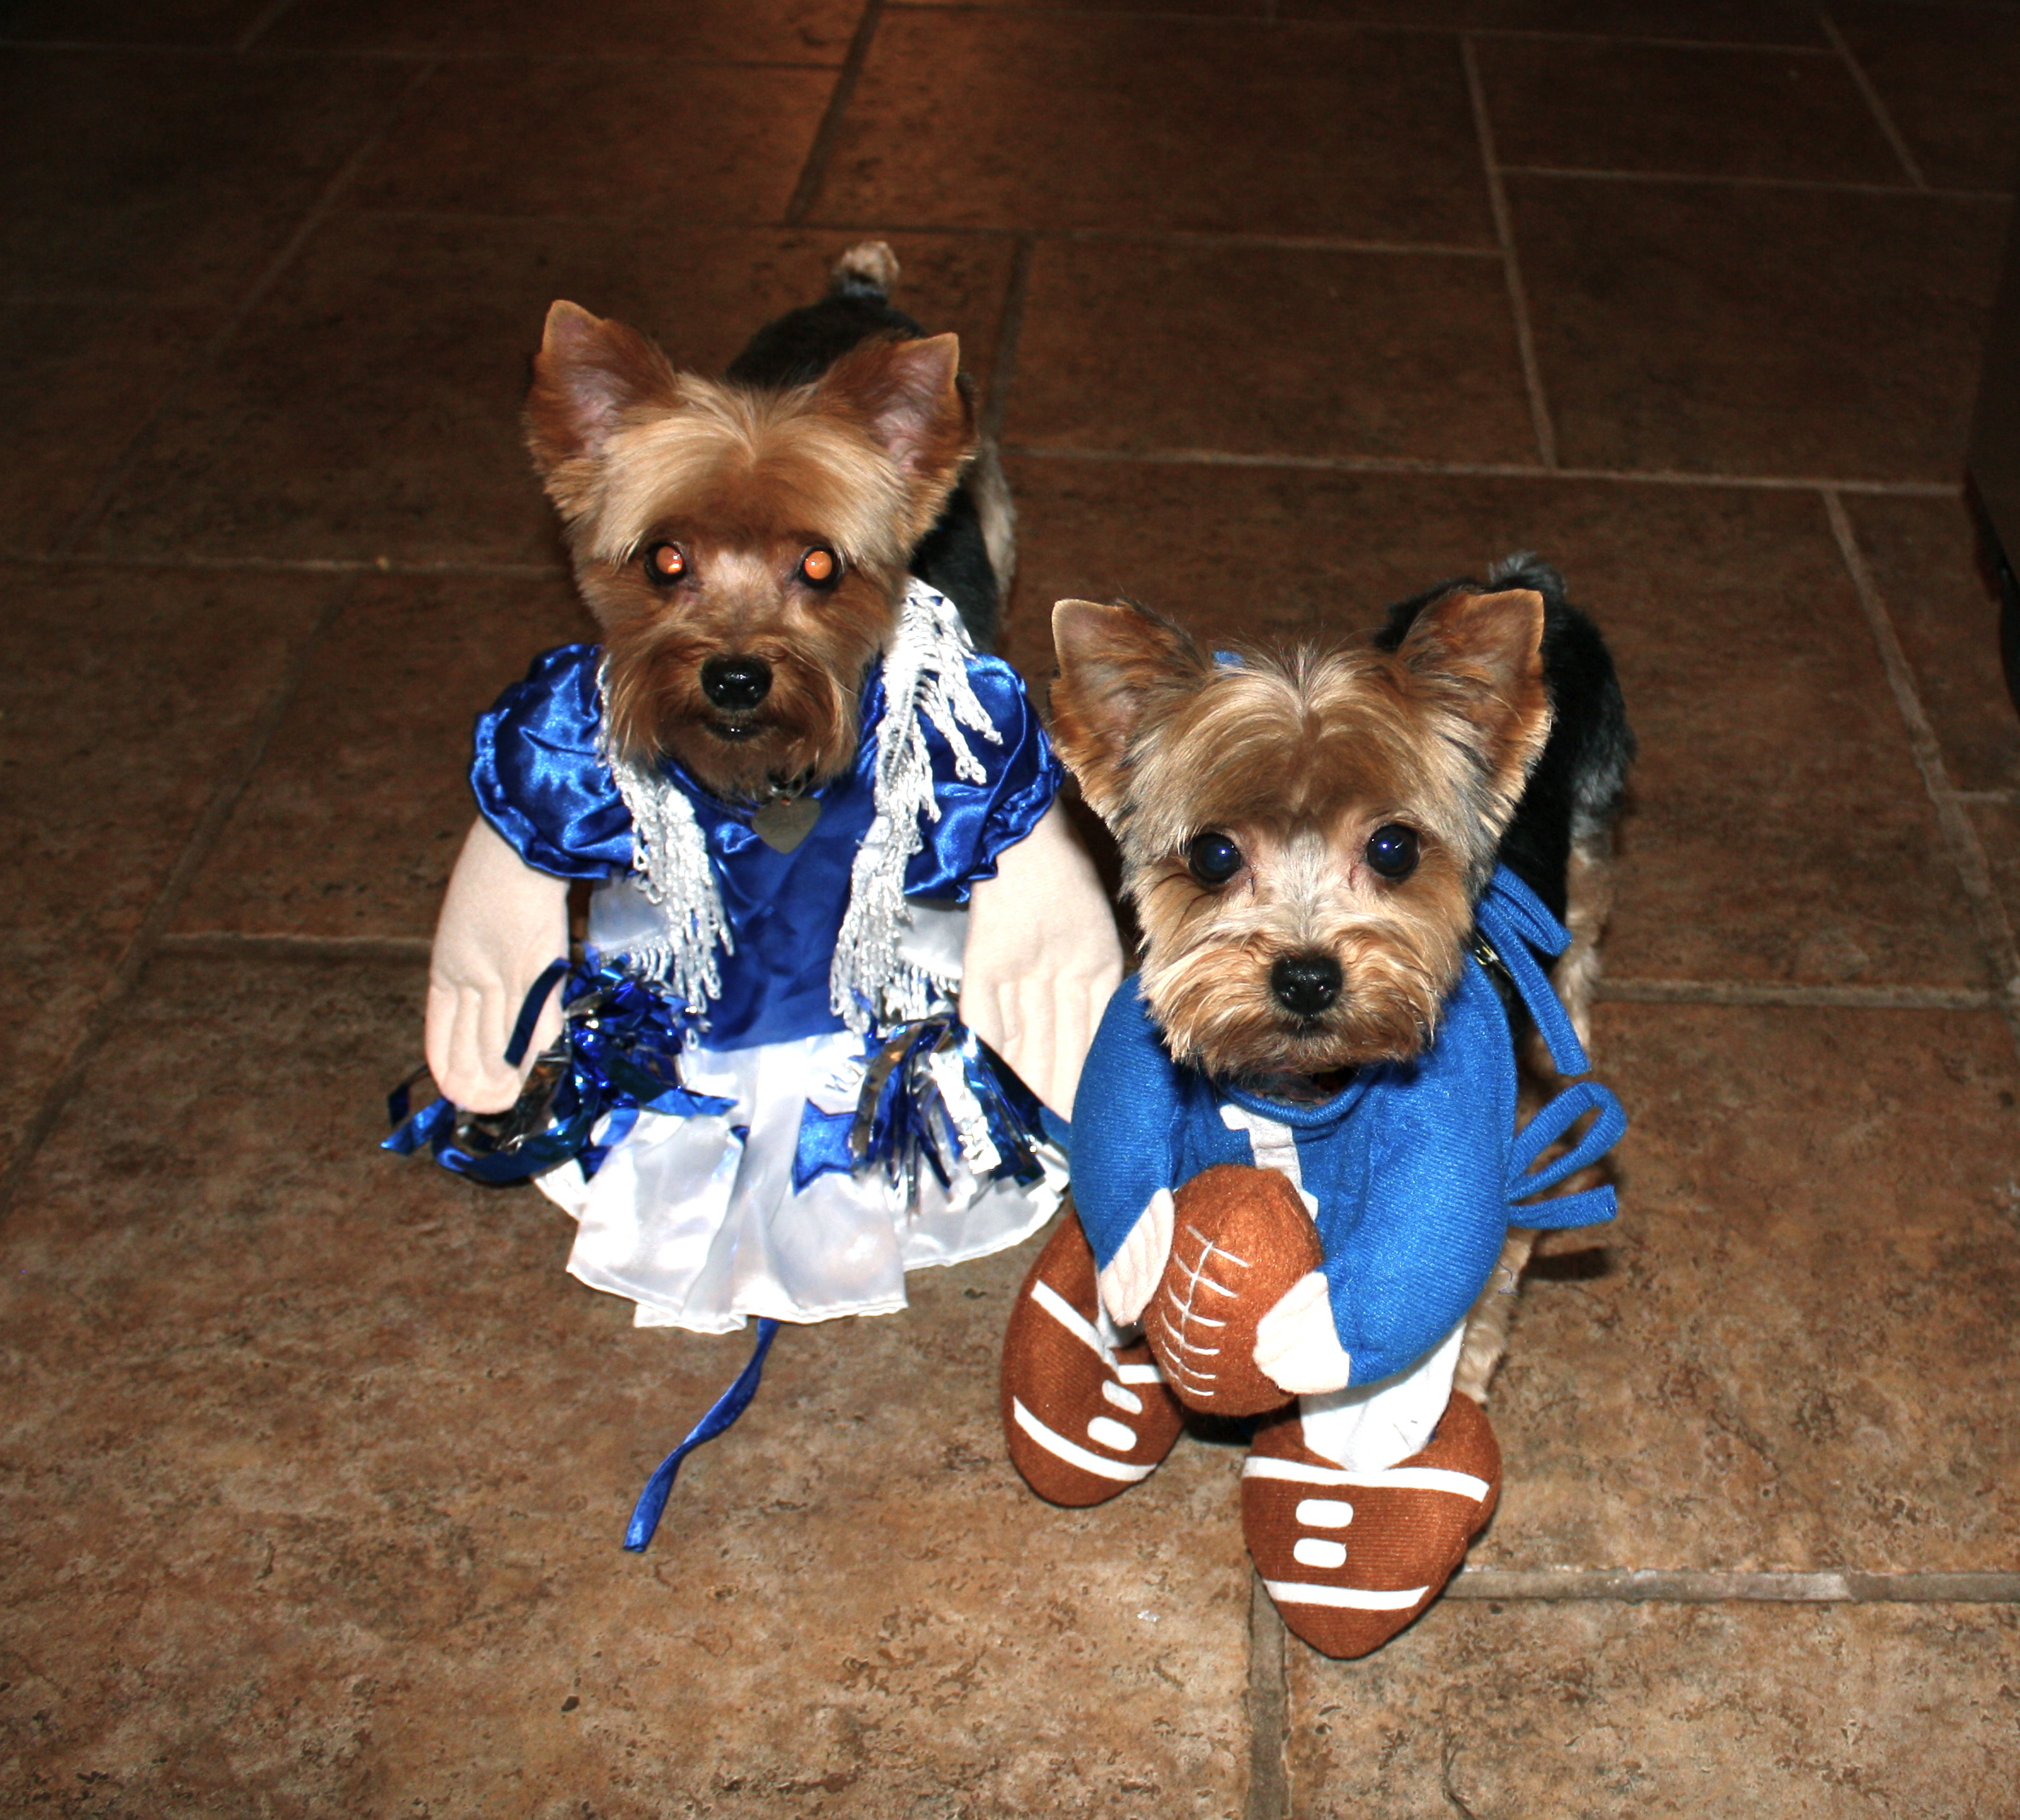 Roller skates for dogs - 54 Best Images About Yorkie Love On Pinterest Pets Puppys And Yorkies